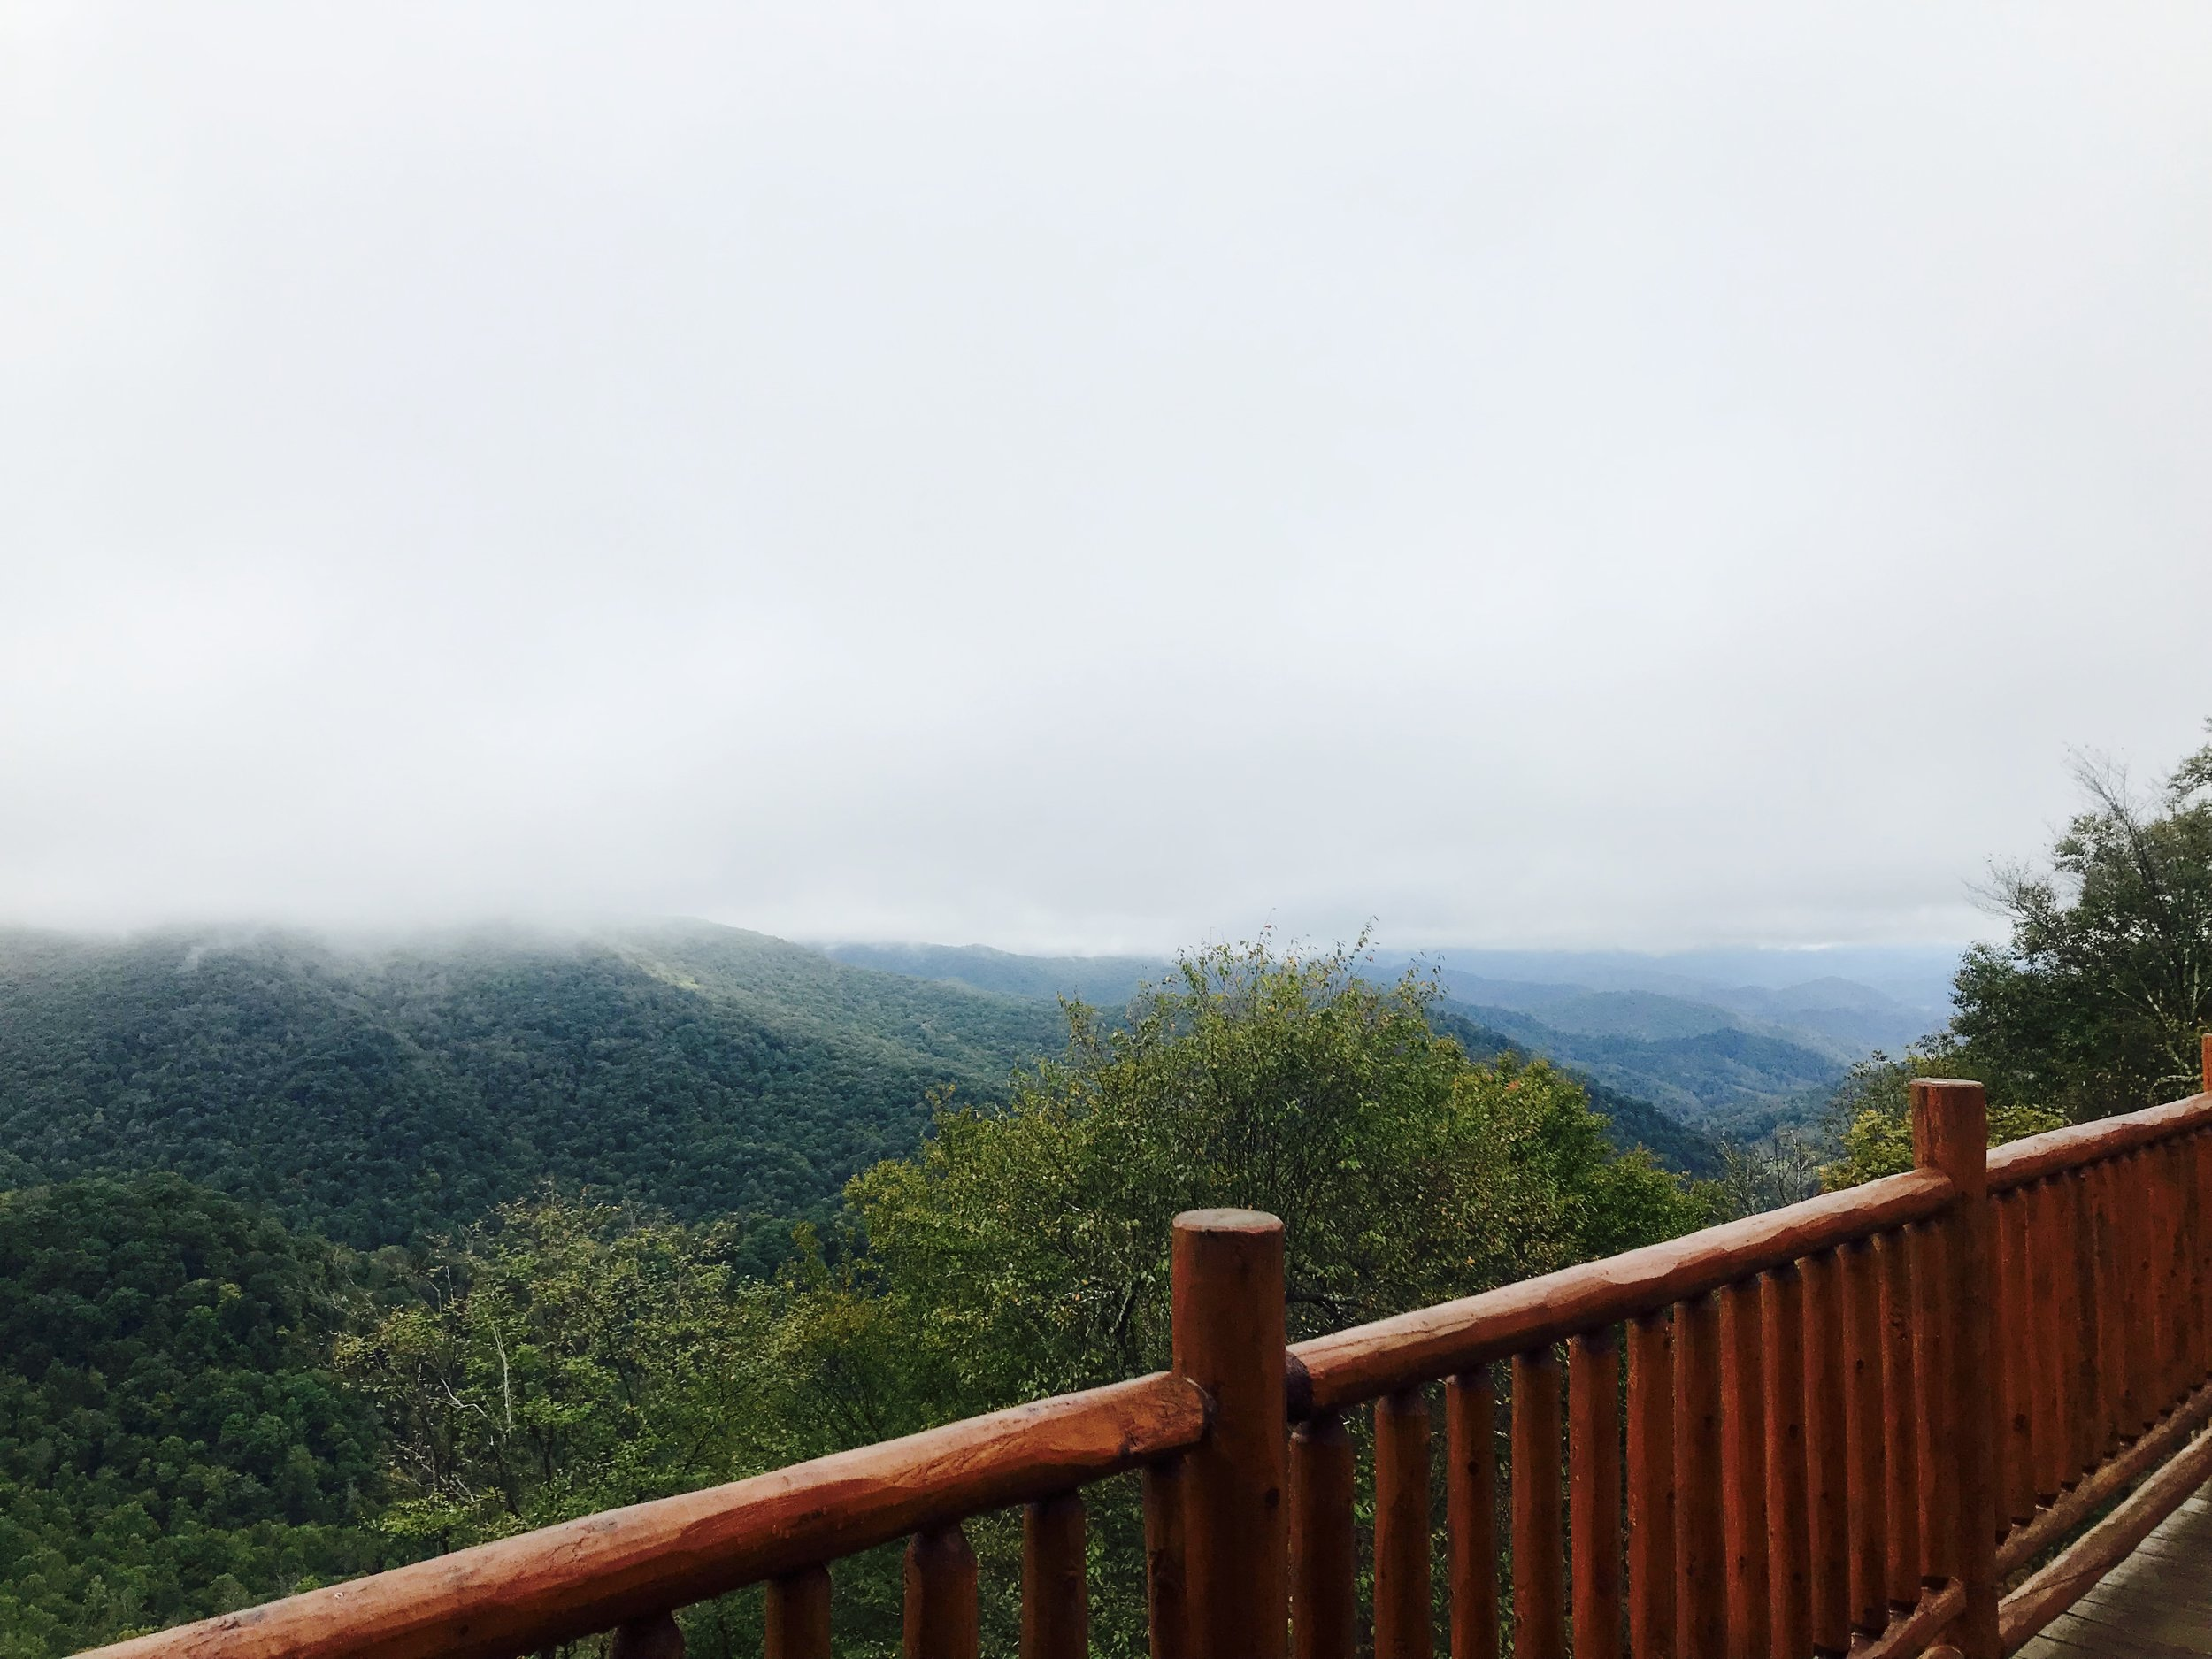 Misty mountain morning views from the deck…